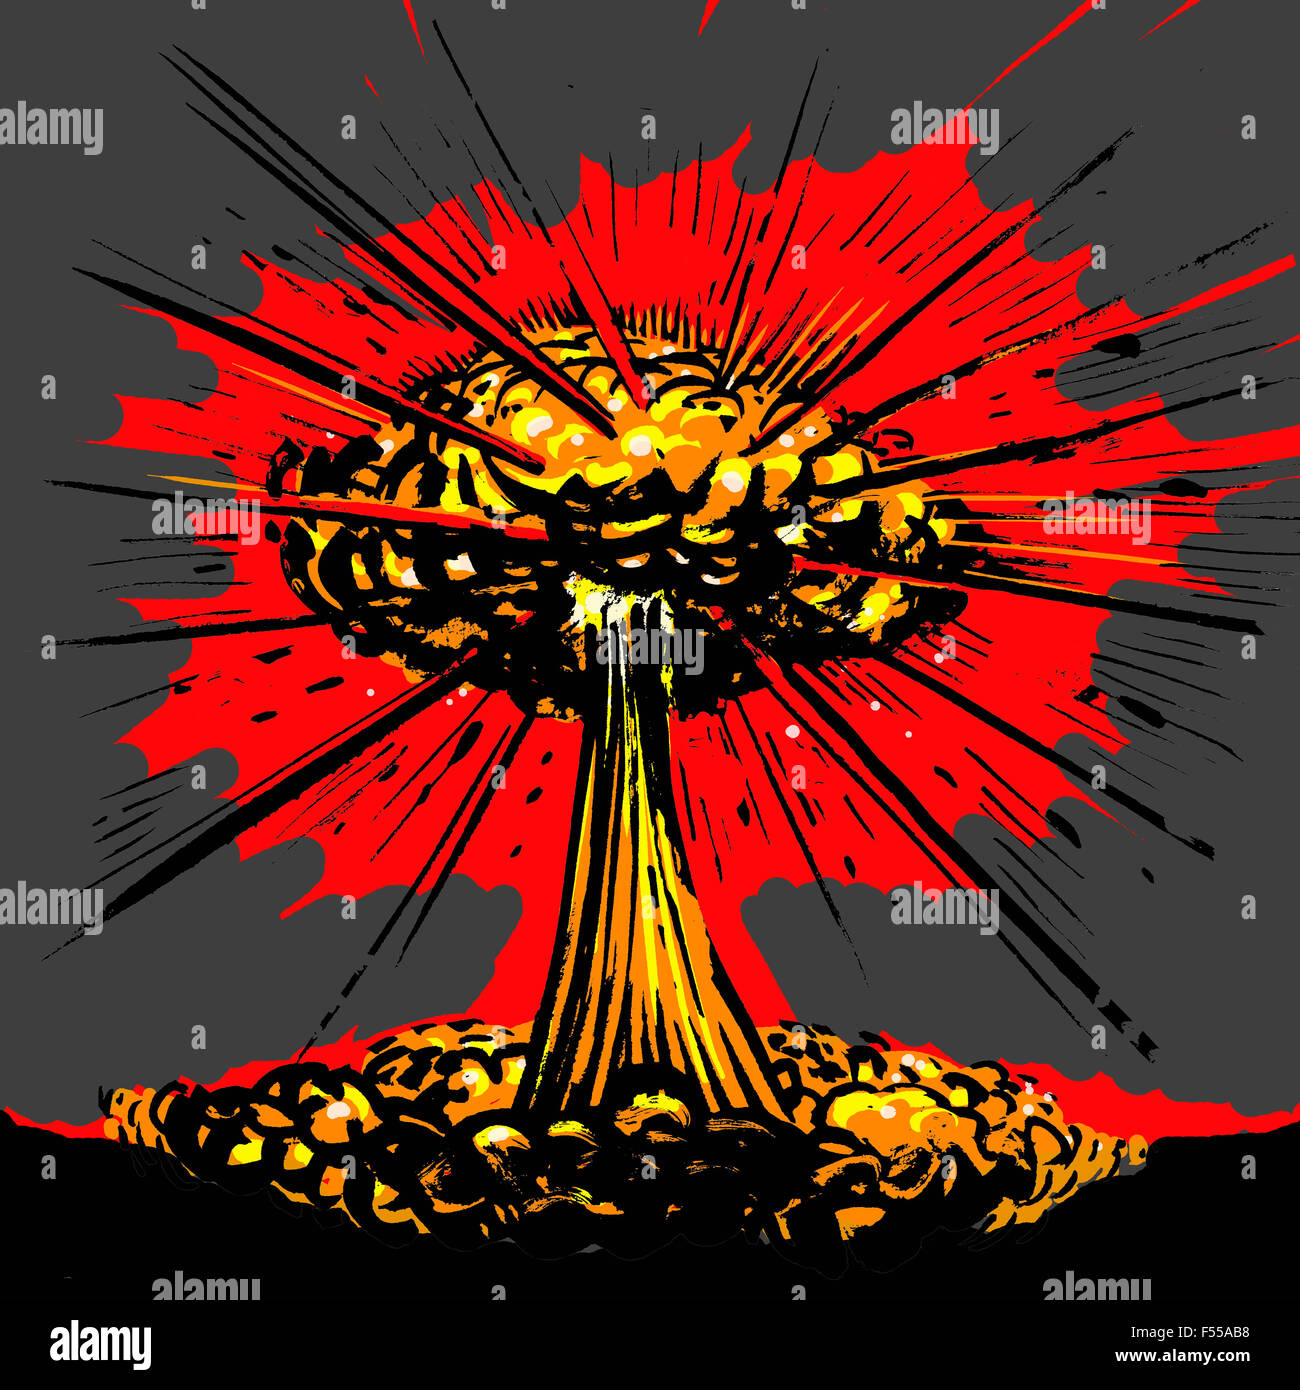 Illustrative image of nuclear explosion against gray background - Stock Image